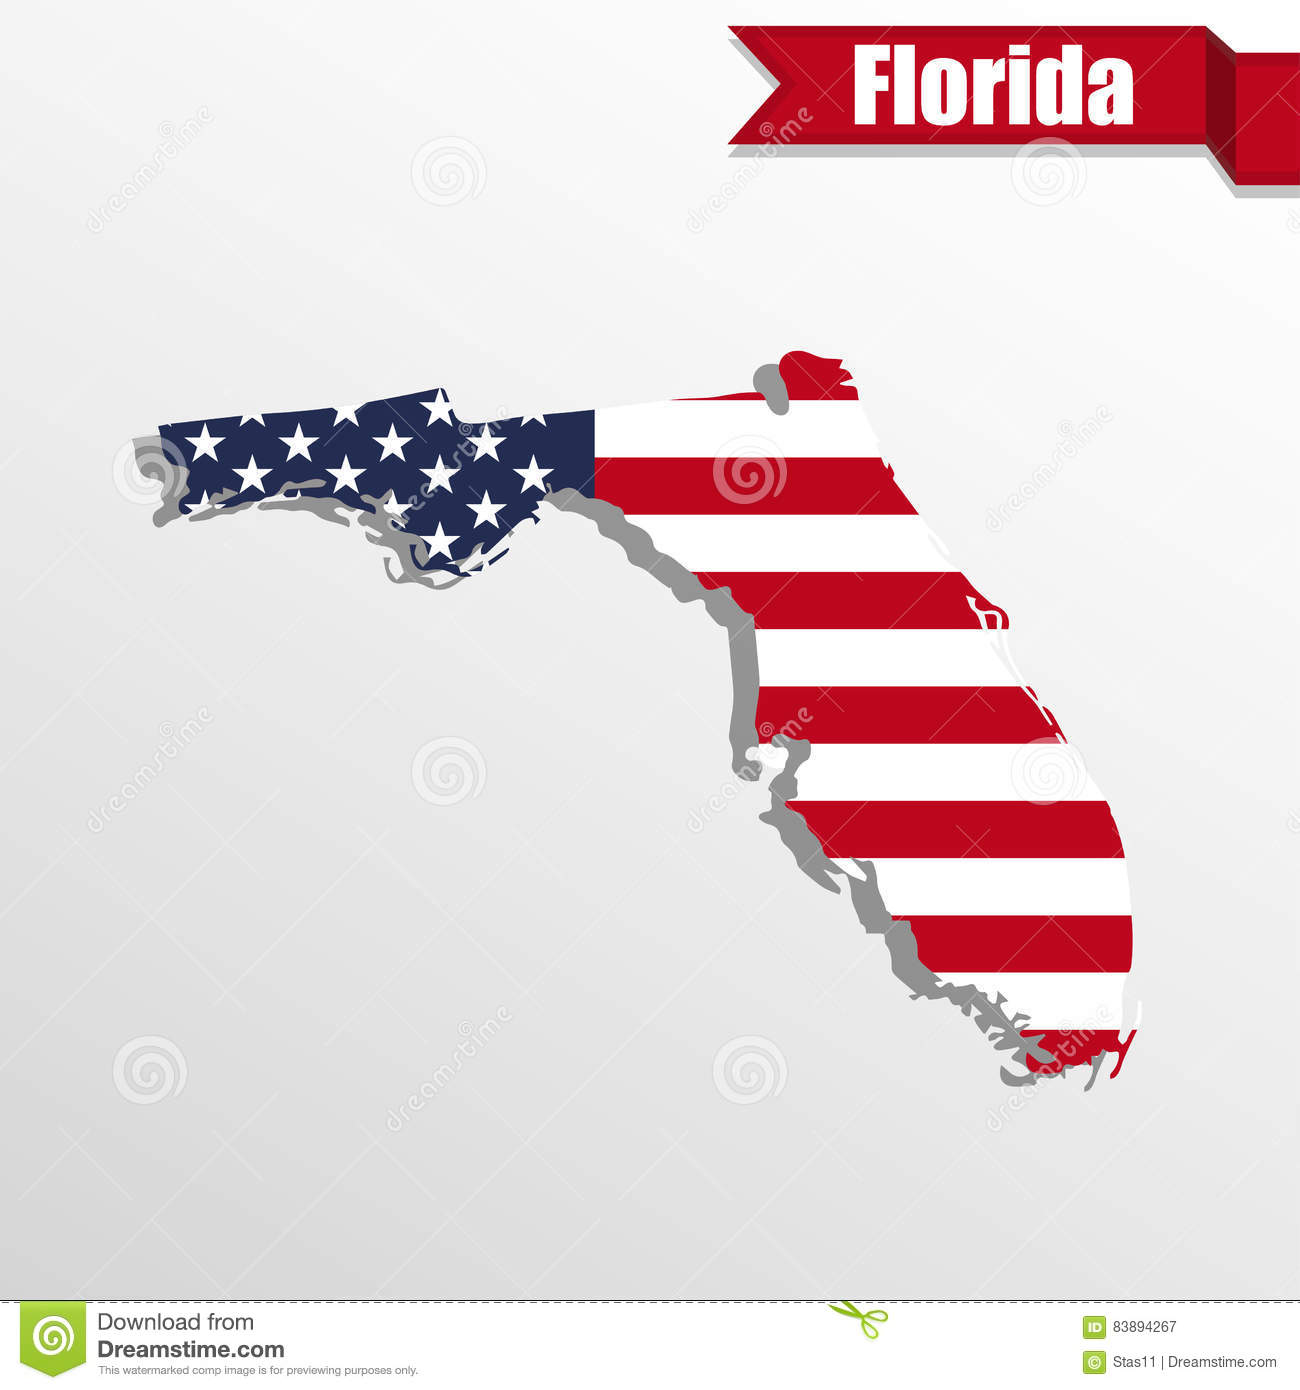 Florida State Map With US Flag Inside And Ribbon Stock - Us map florida state